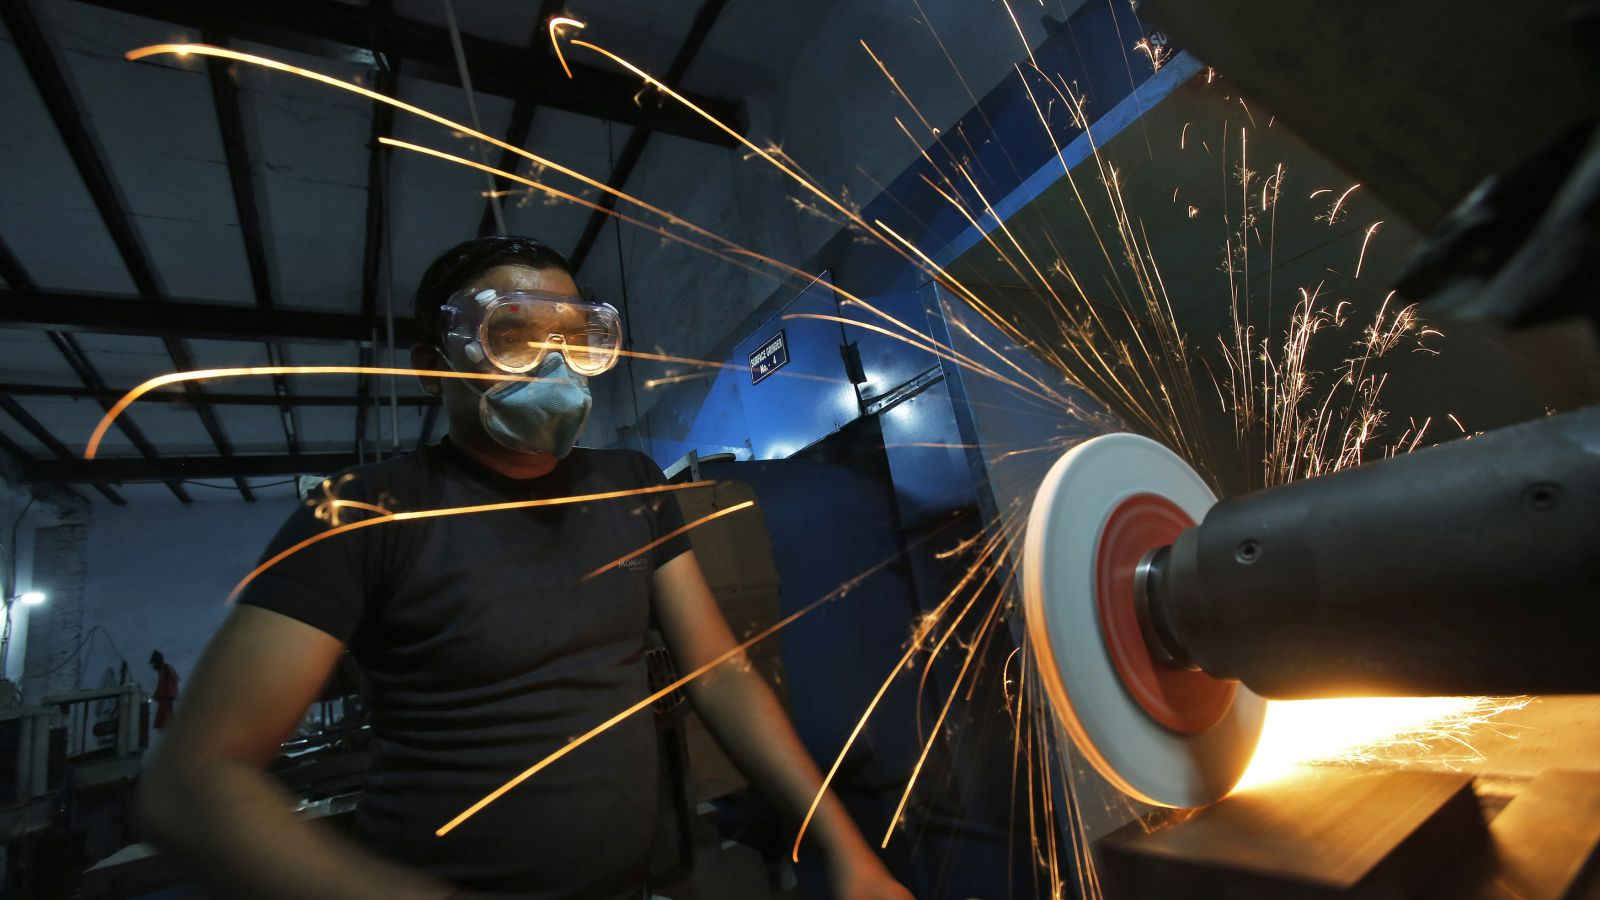 A worker operates a lathe machine as he makes a steel cutter at a manufacturing unit in Noida, on the outskirts of New Delhi November 3, 2014. Indian factory activity expanded at a modest pace in October, as stronger demand led manufacturers to add jobs for the first time in four months and allowed them to raise prices, a business survey showed on Monday.